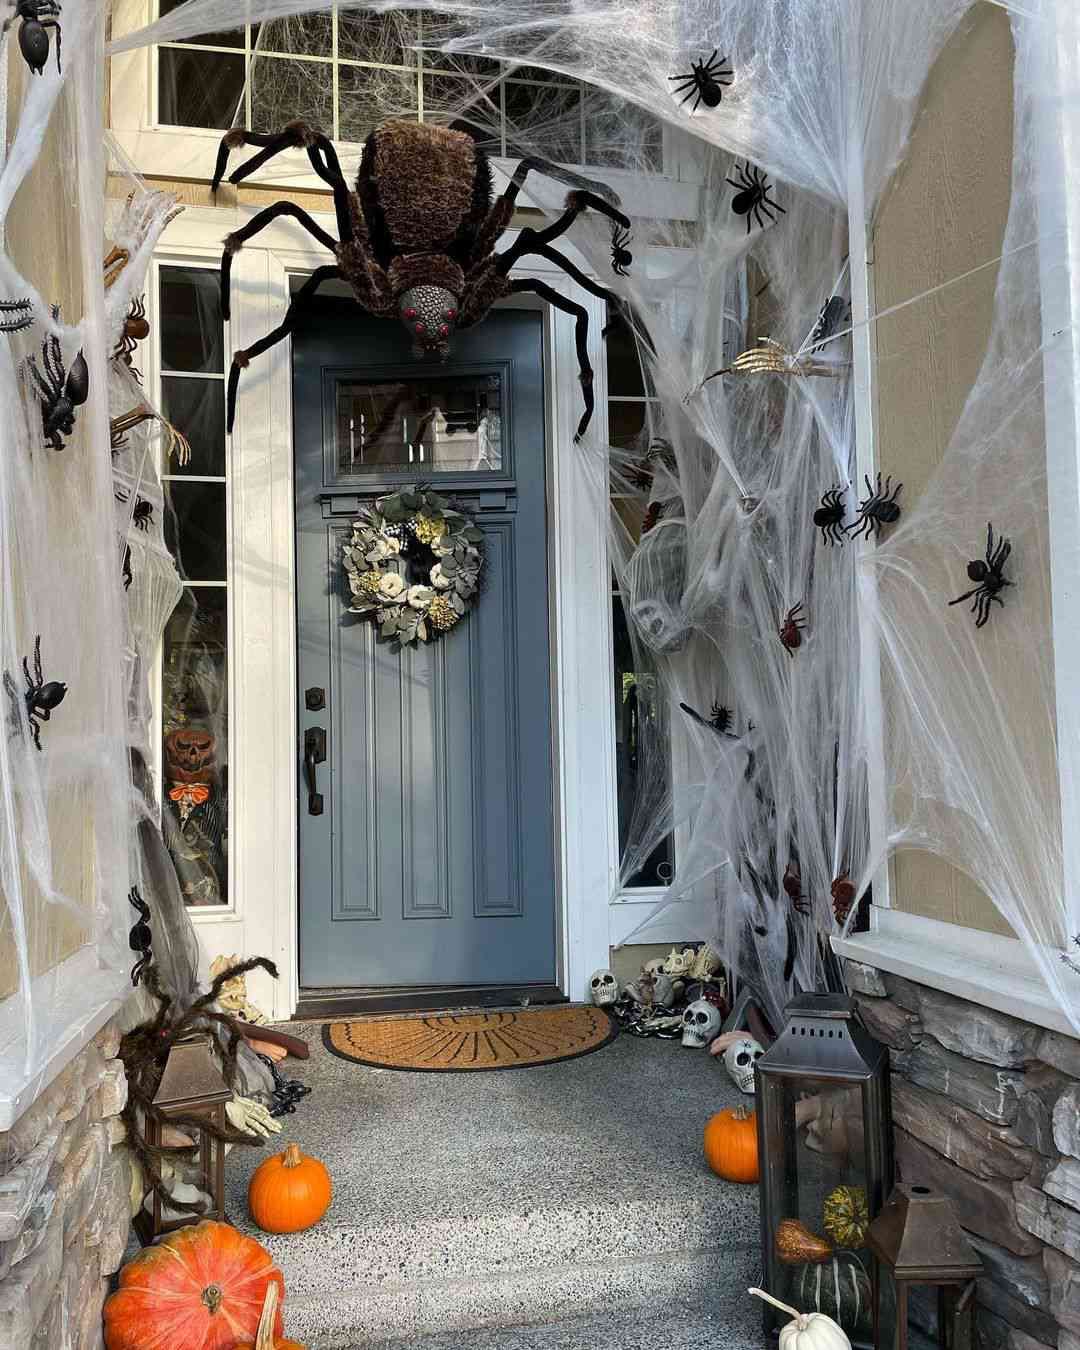 House with large spider